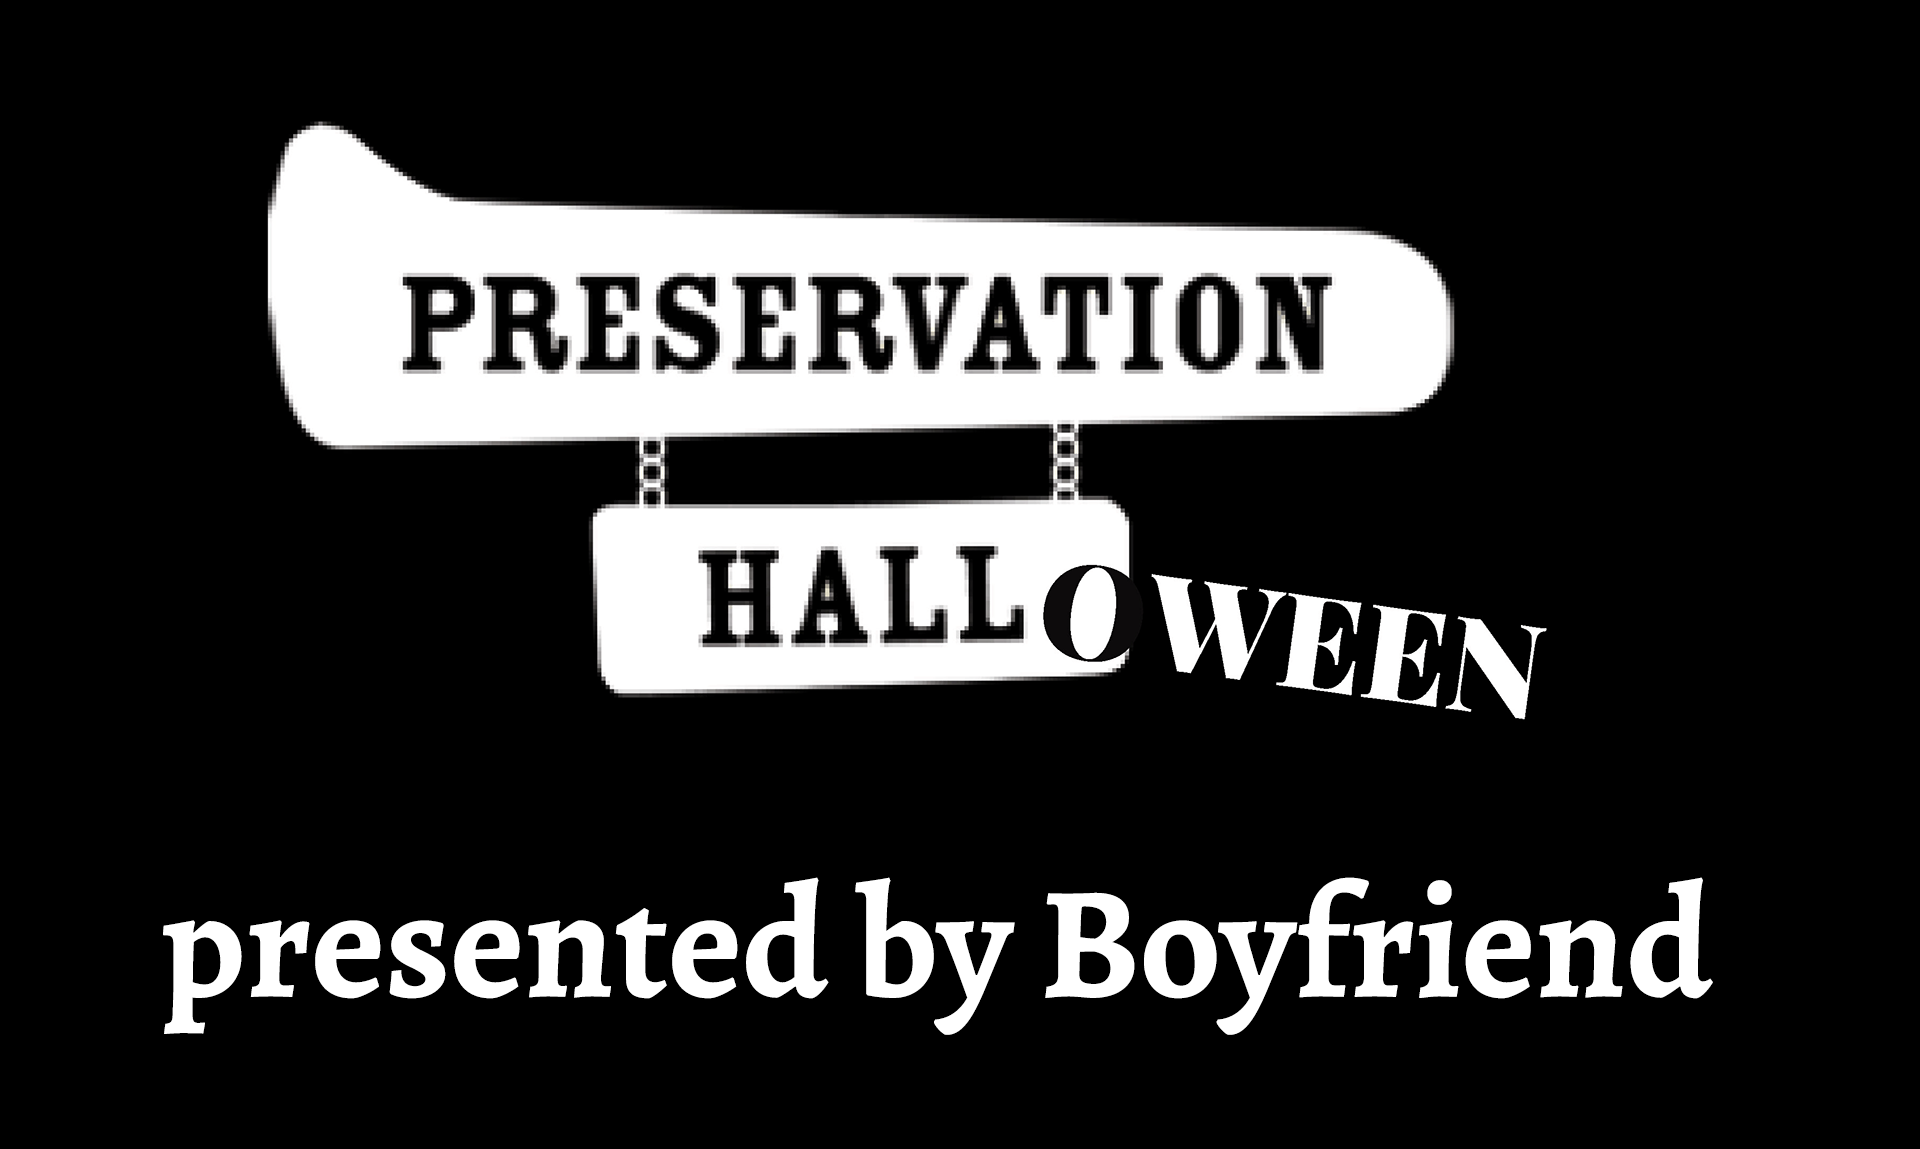 PRESERVATION HALLOWEEN